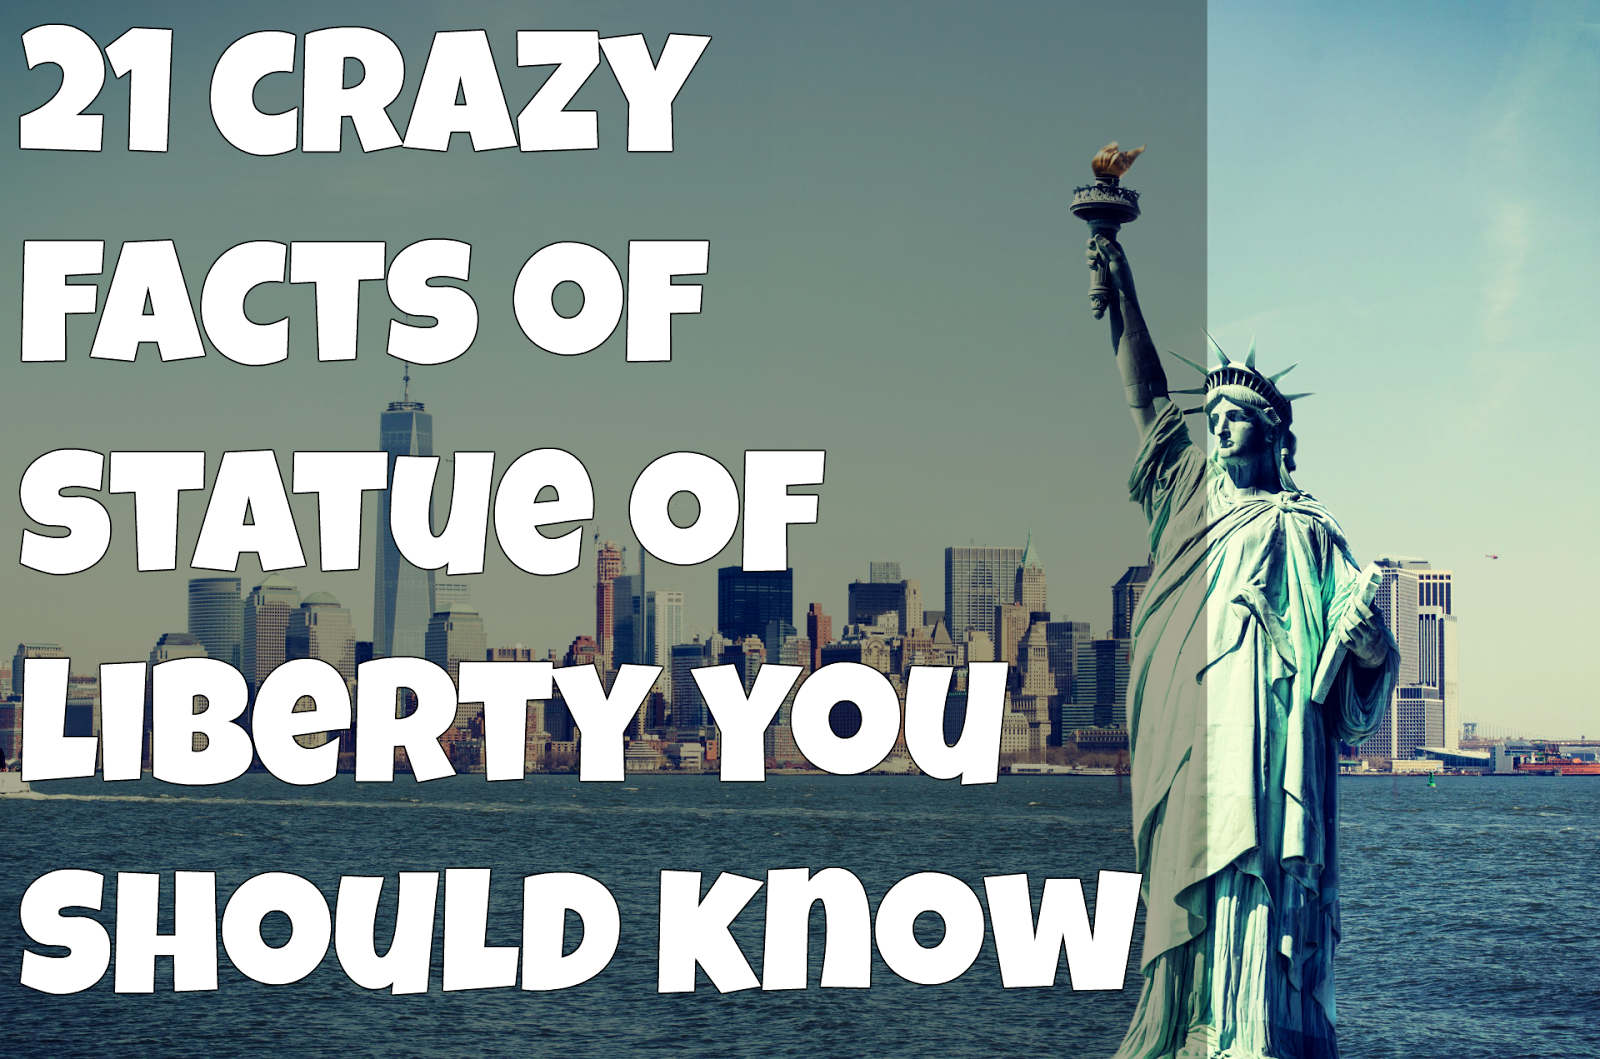 21 Crazy Facts Of Statue Of Liberty You Should Know About